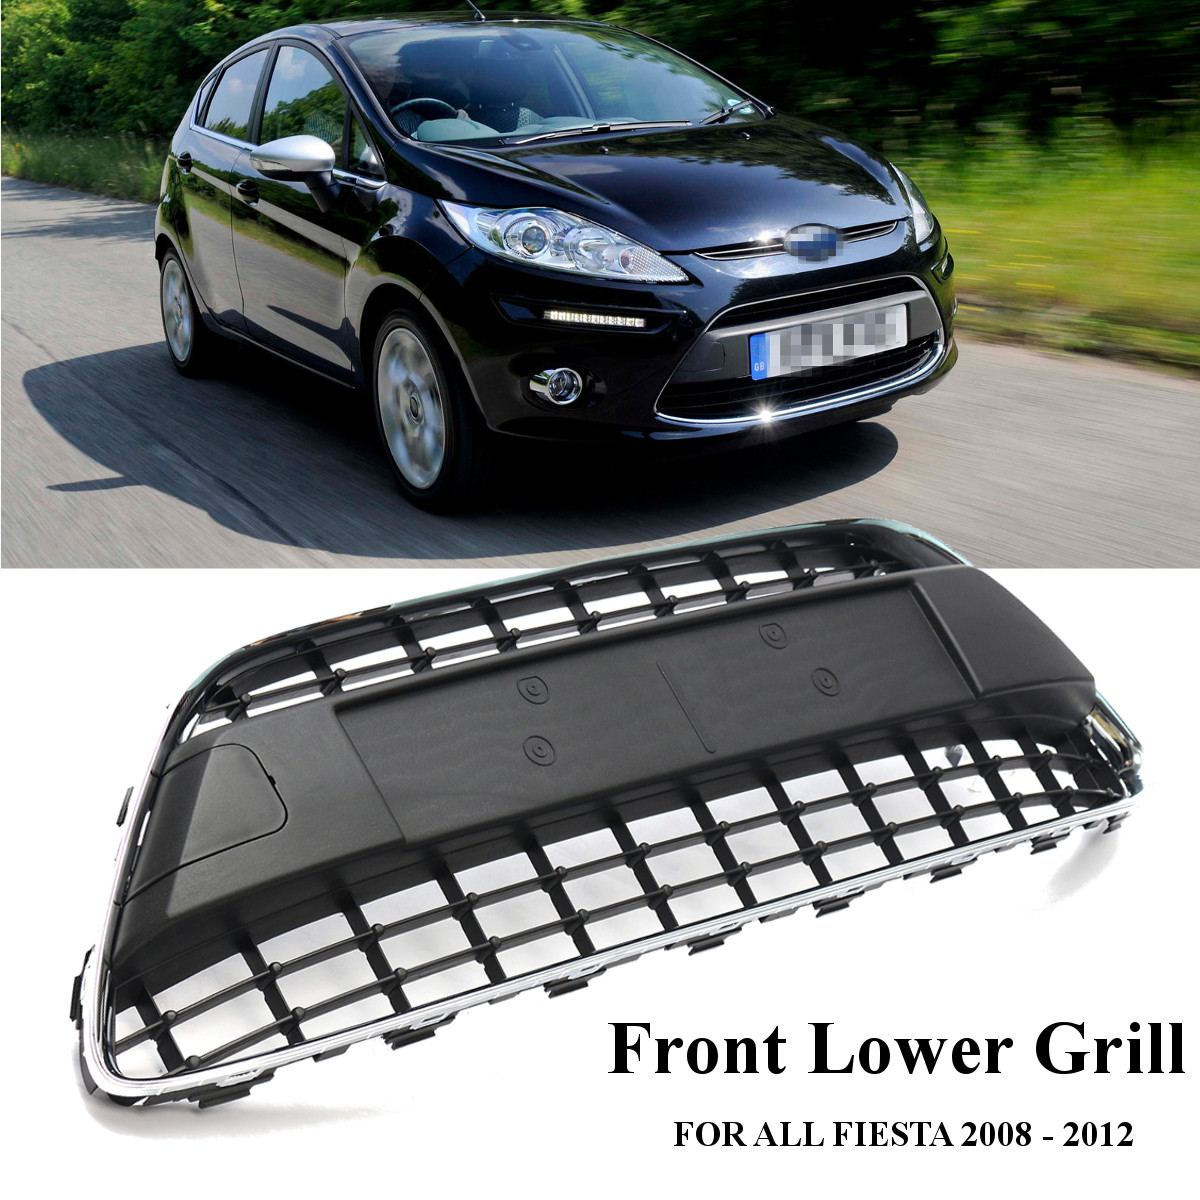 98cm Car Front Bumper Grille Center Lower Racing Grill Black W/ Chrome Trim For Ford/Fiesta MK7 2008-2012